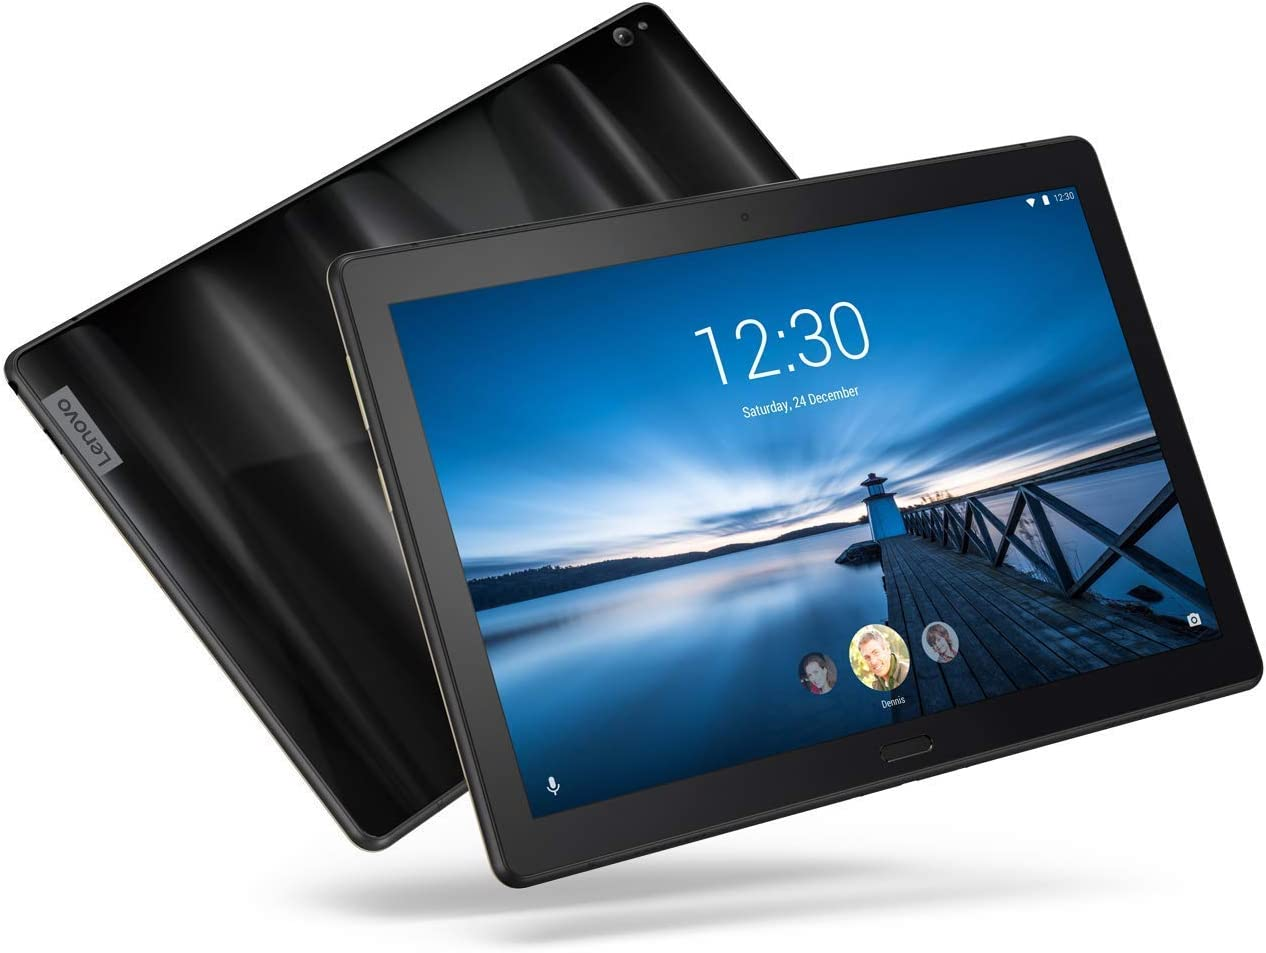 Lenovo Smart Tab P10 10.1 inches Alexa-Enabled Android Tablet, Octa-Core 1.8GHz 32GB Dual Glass Design (Renewed)